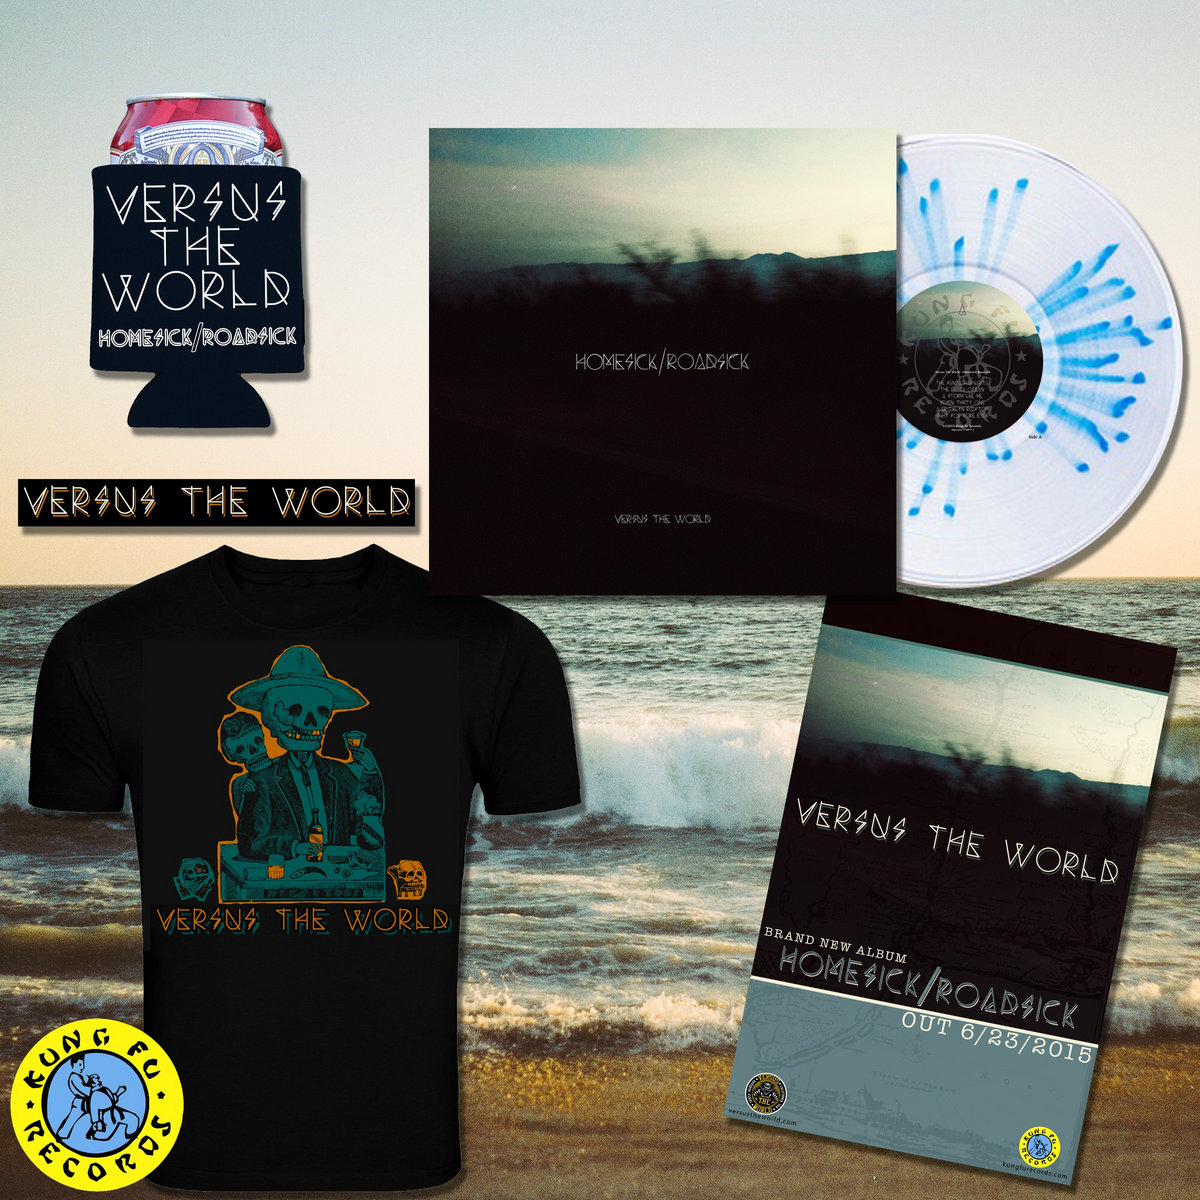 Shirt design software download free - 12 Vinyl Of Homesick Roadsick T Shirt Printed On Gildan 5000 11x17 Folded Poster 2x8 Sticker Koozie Album Download Includes Unlimited Streaming Of